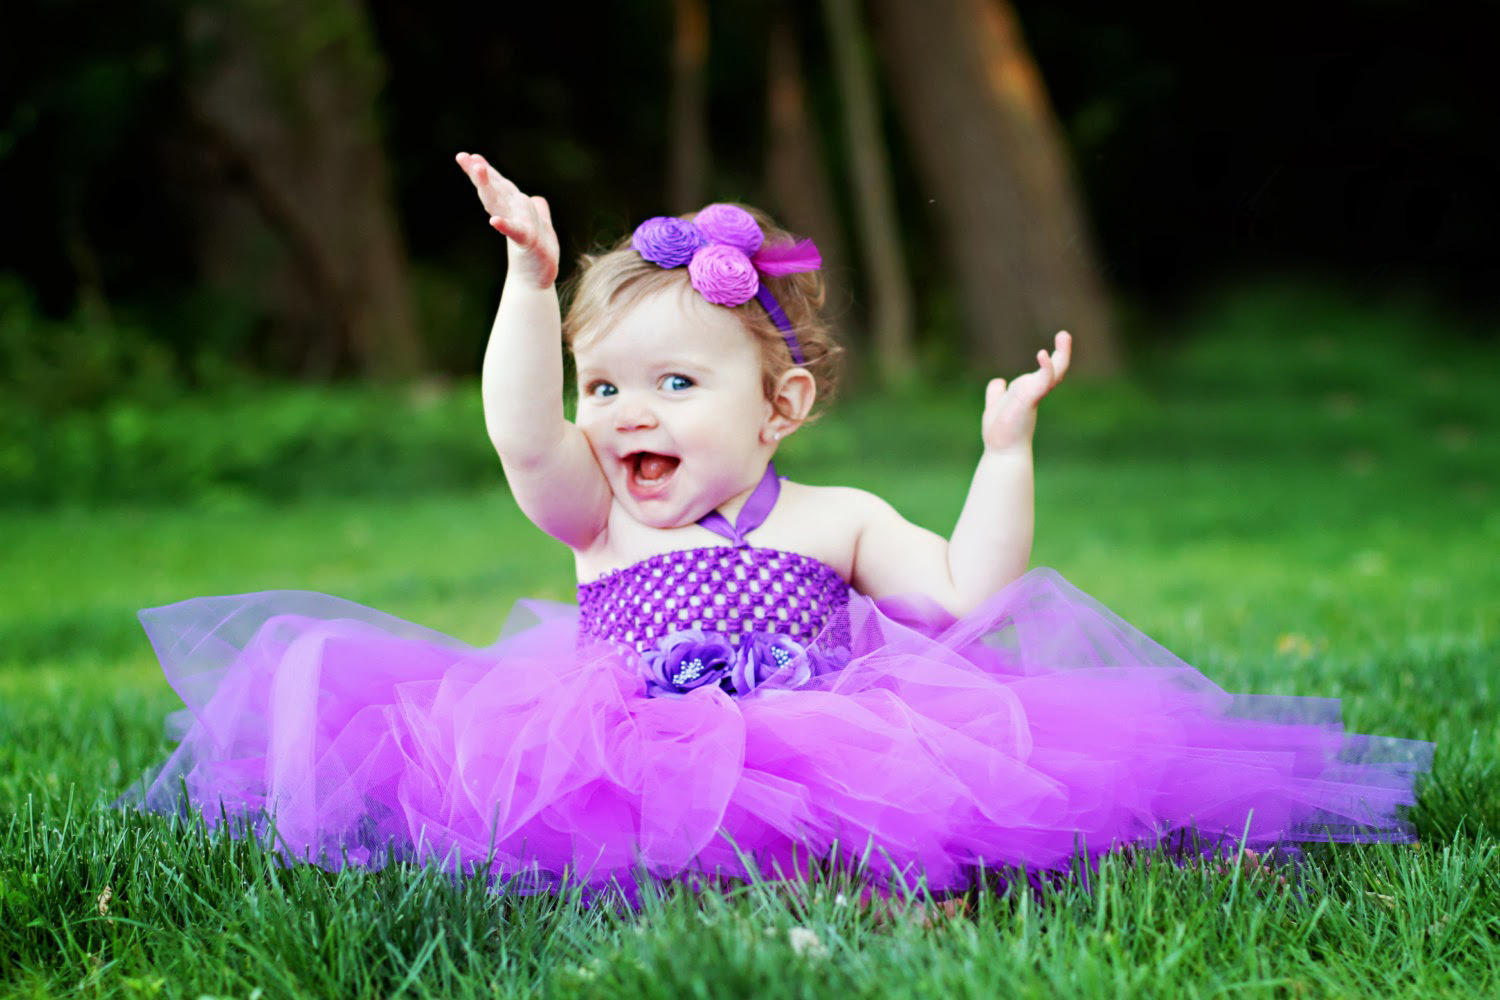 Baby Wallpapers - Best HD Wallpaper